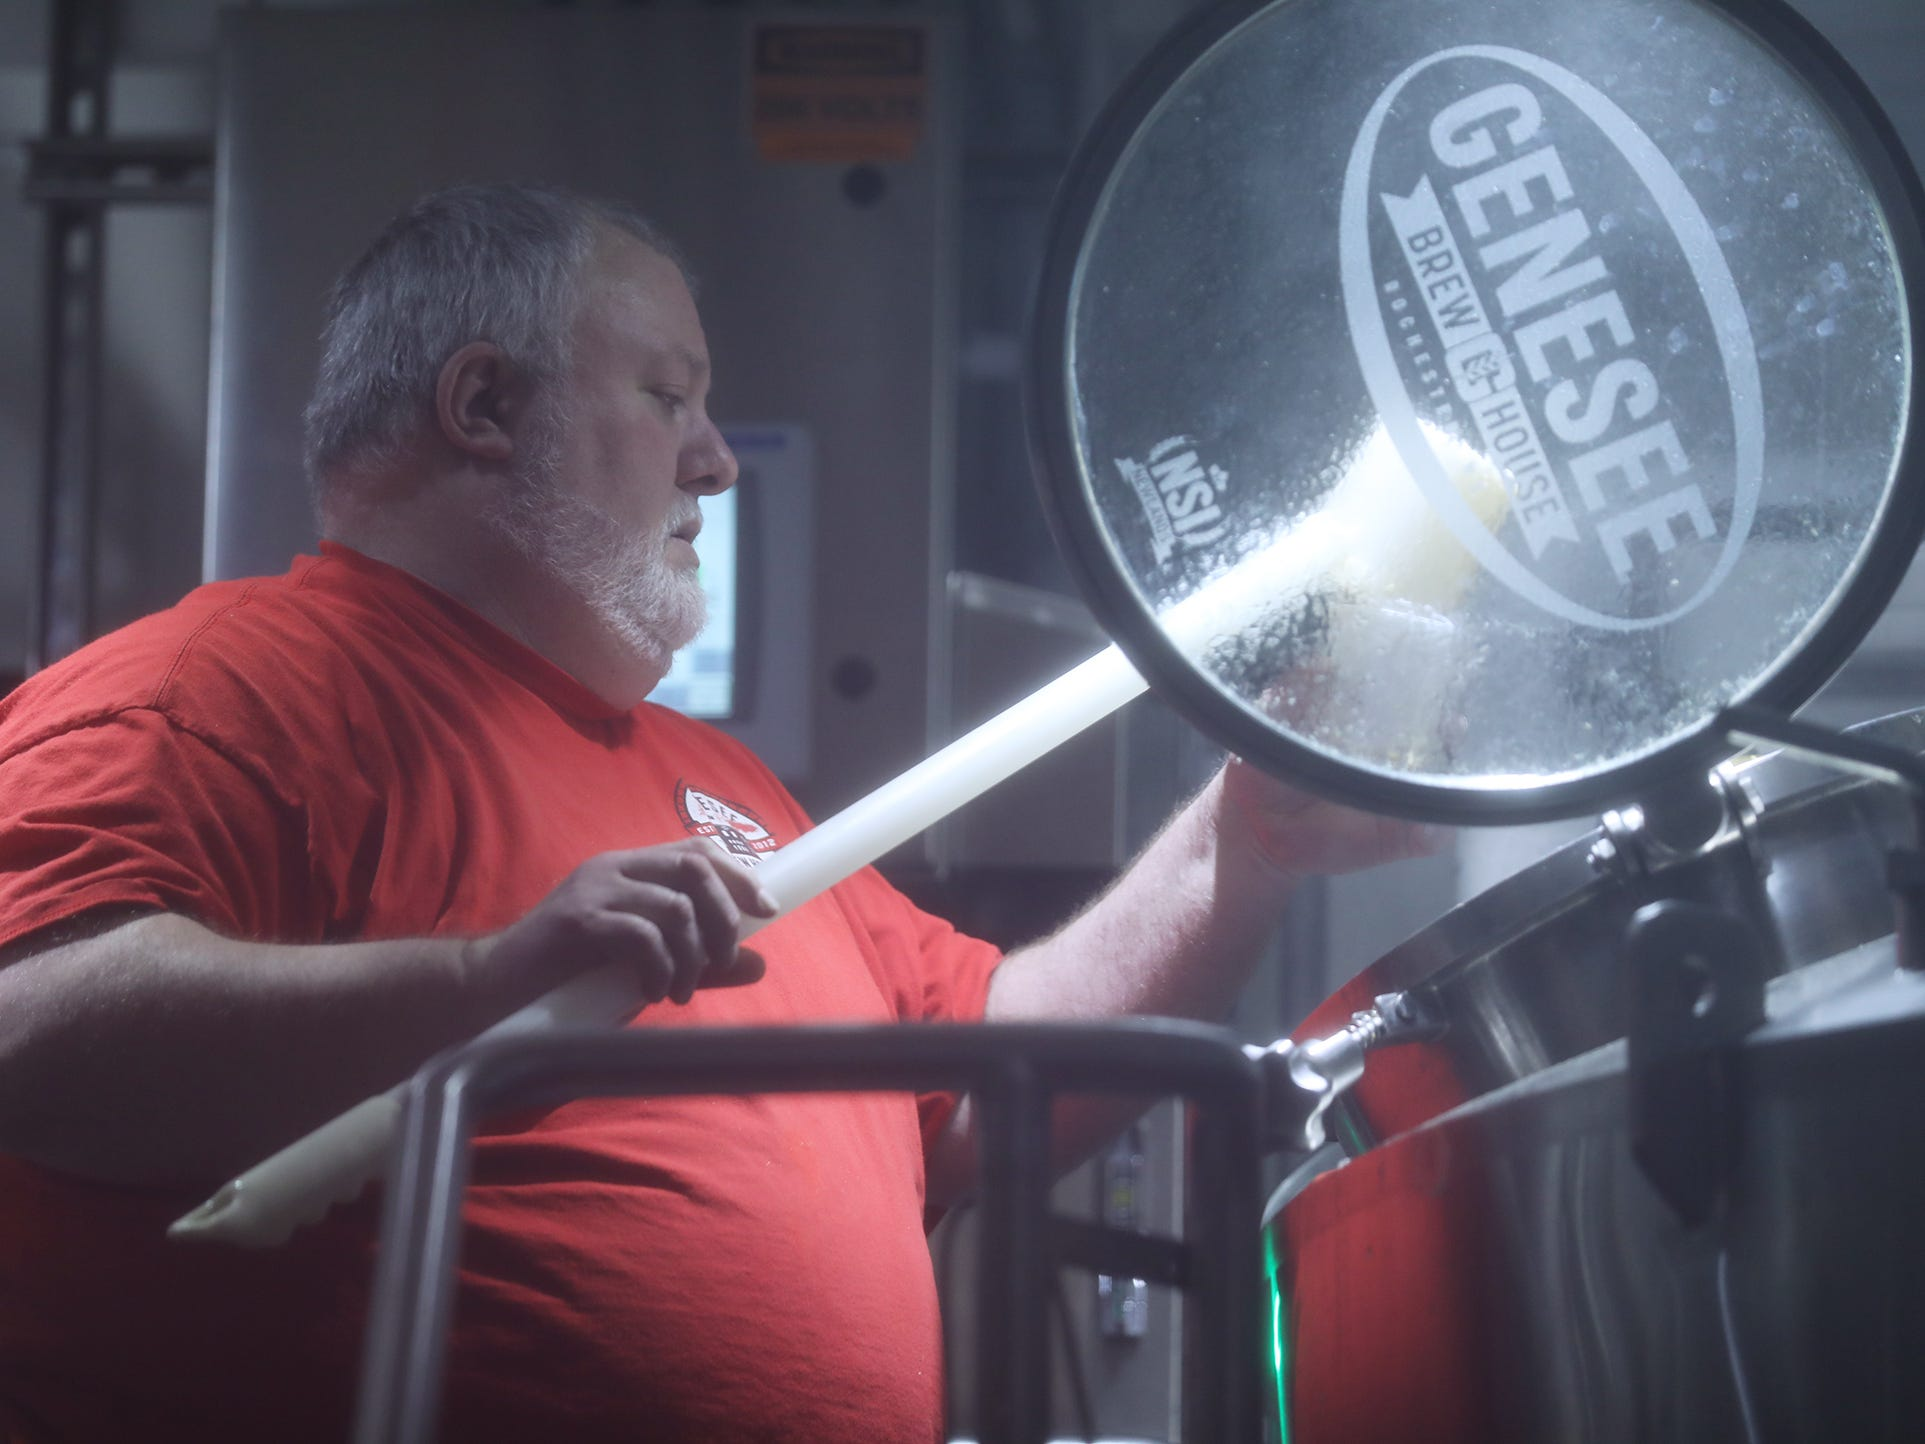 Dean Jones, brewmaster at the Genesee Brew House, takes a sample of the mash during a collaborative brew day with Other Half Brewing on Feb. 12. The two breweries are teaming to release Genesee Dream Ale.